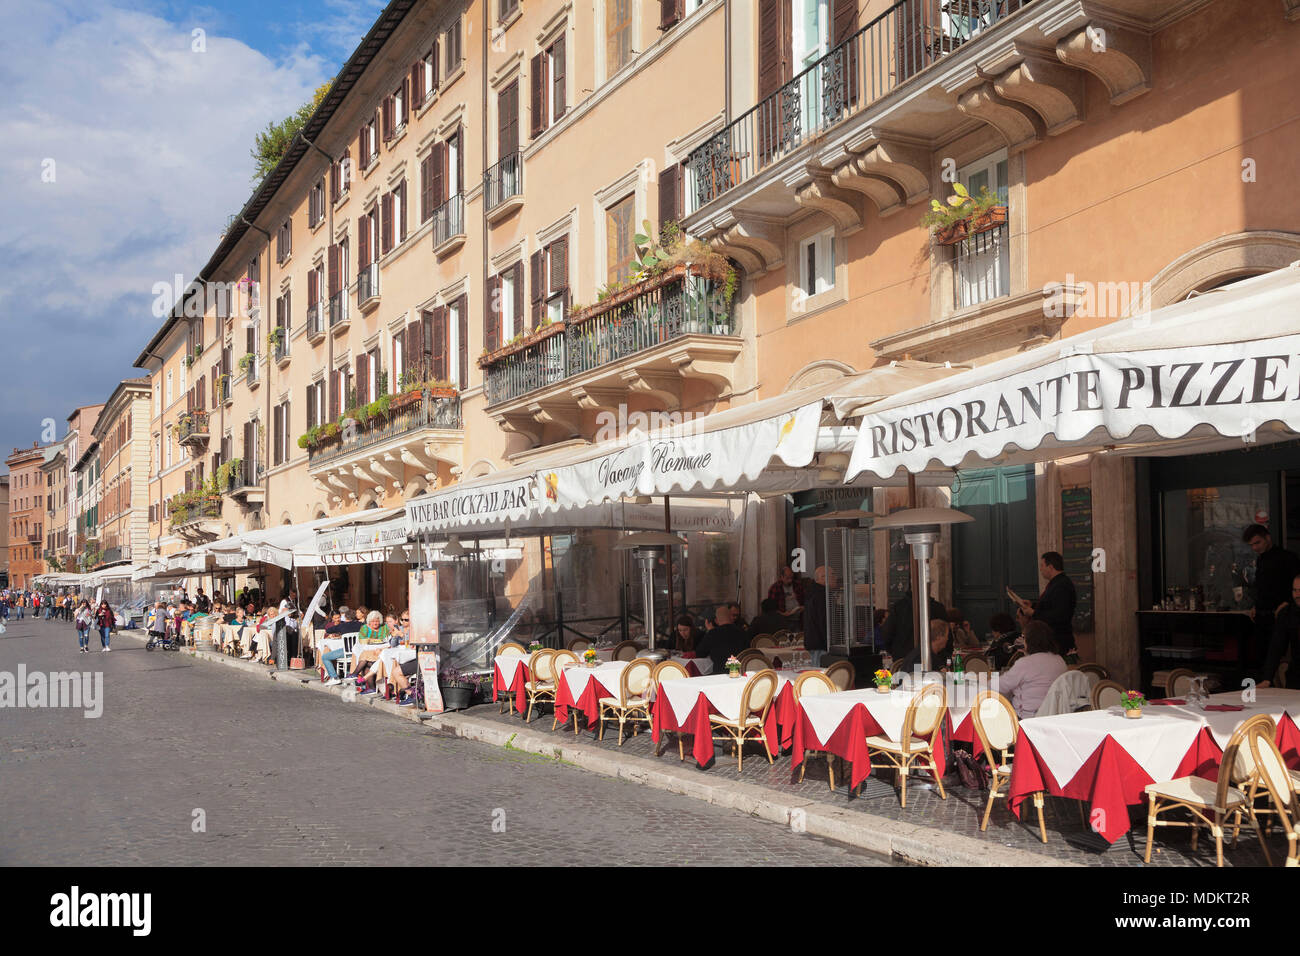 Restaurants and street cafes on the square, Piazza Navona, Rome, Lazio, Italy - Stock Image